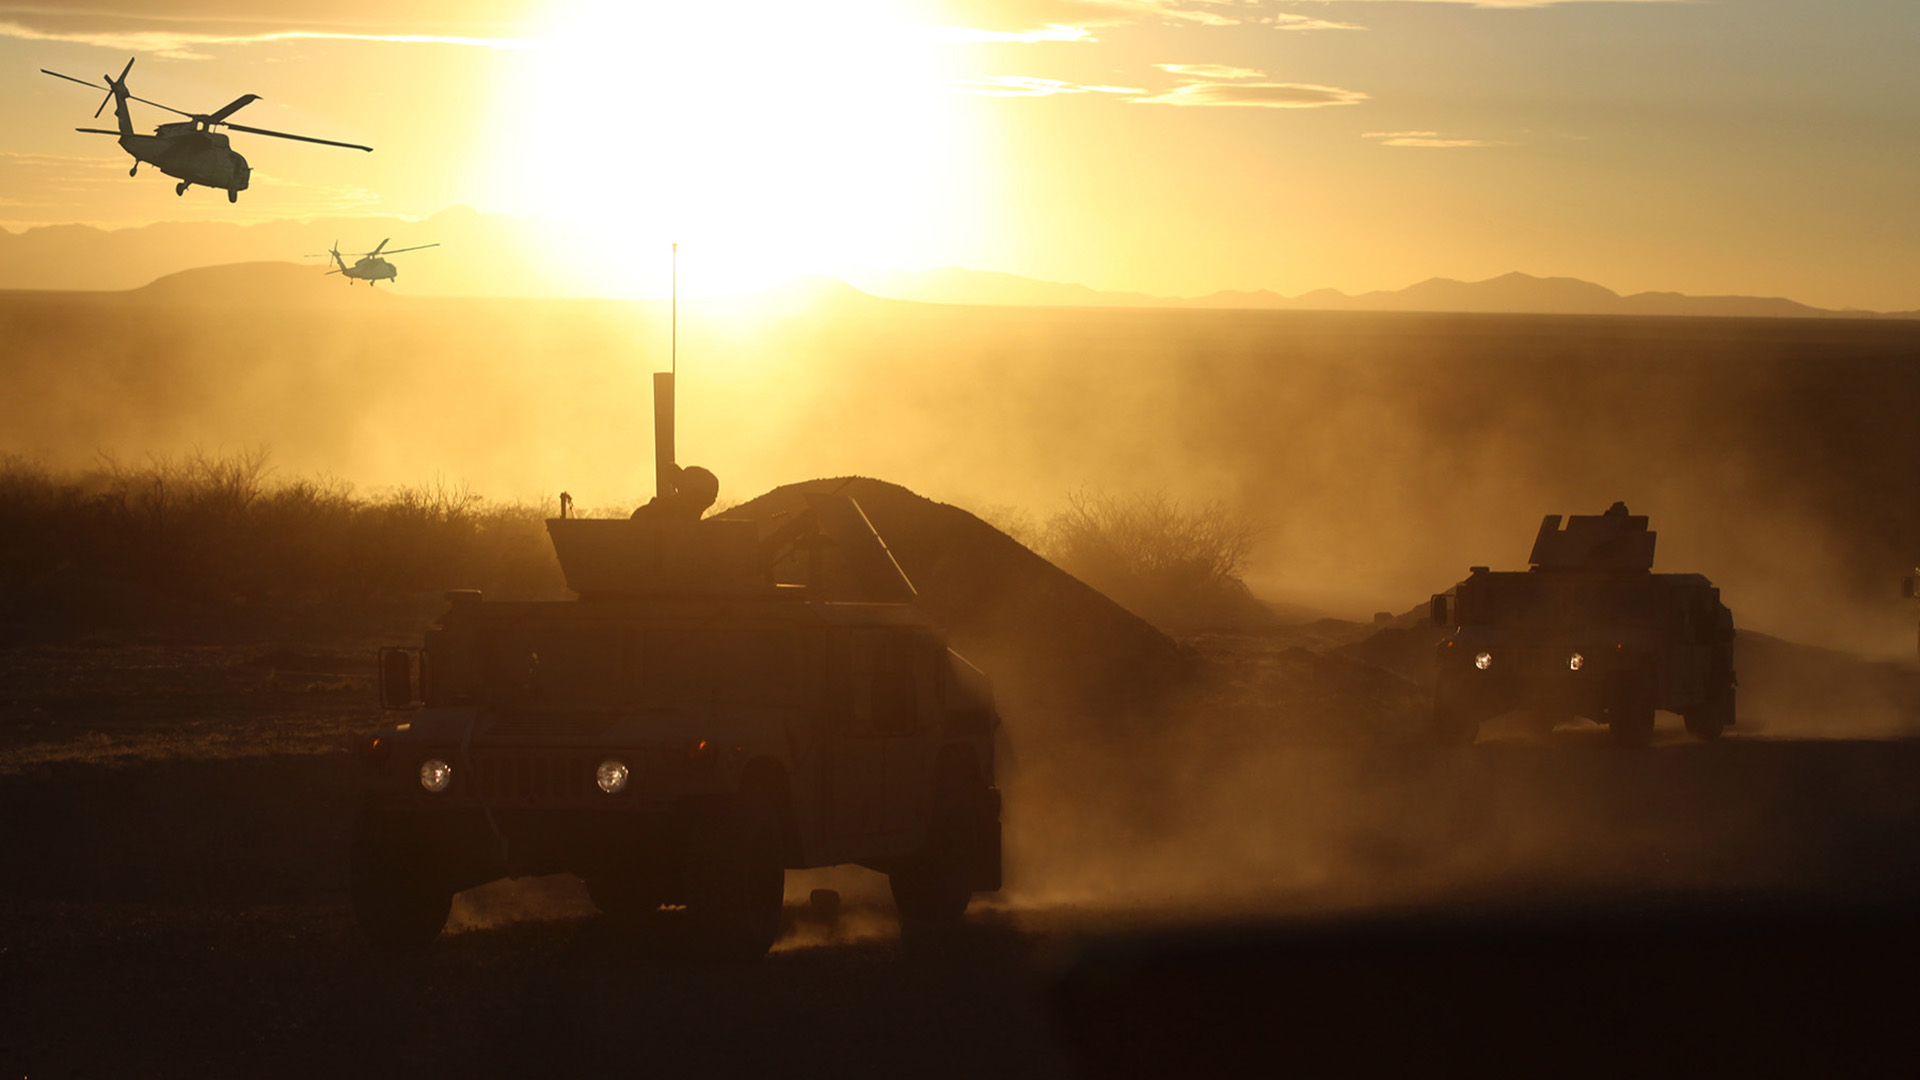 Scenic image with Humvee and helicopter